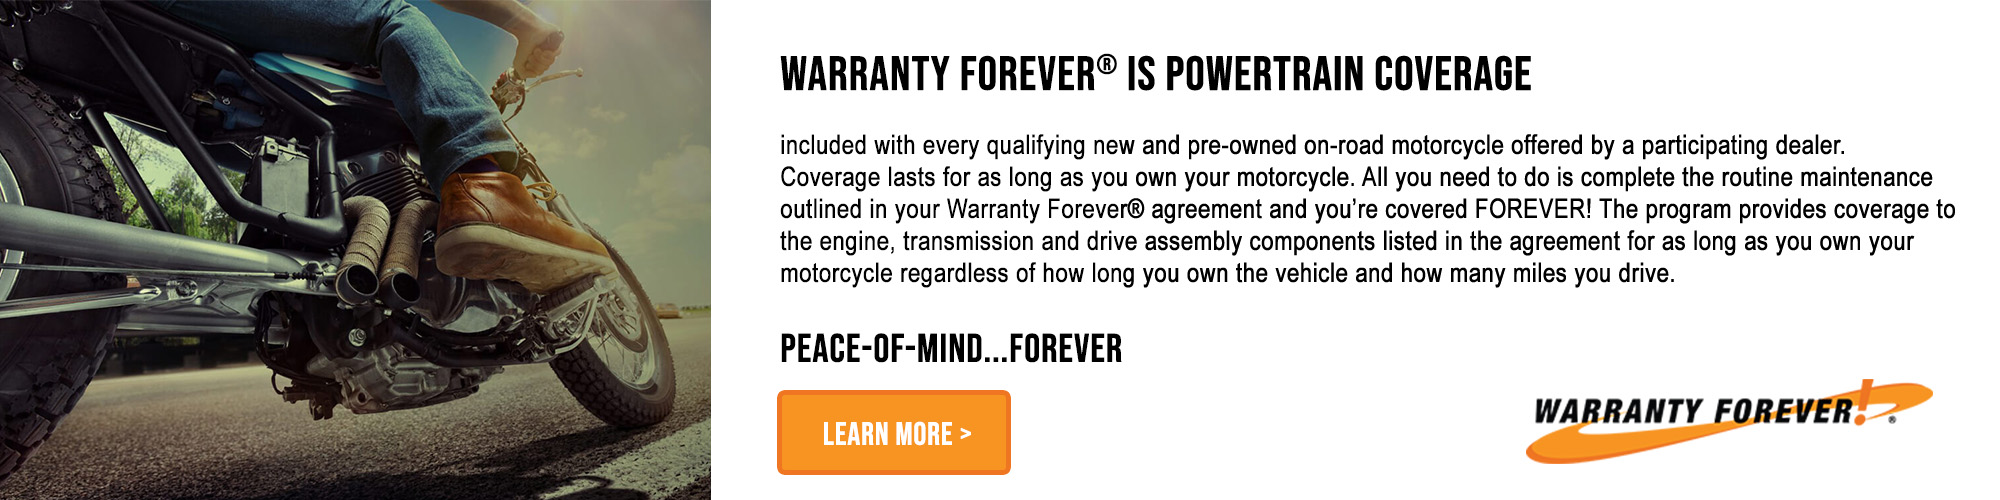 Warranty Forever at Platte River Harley-Davidson